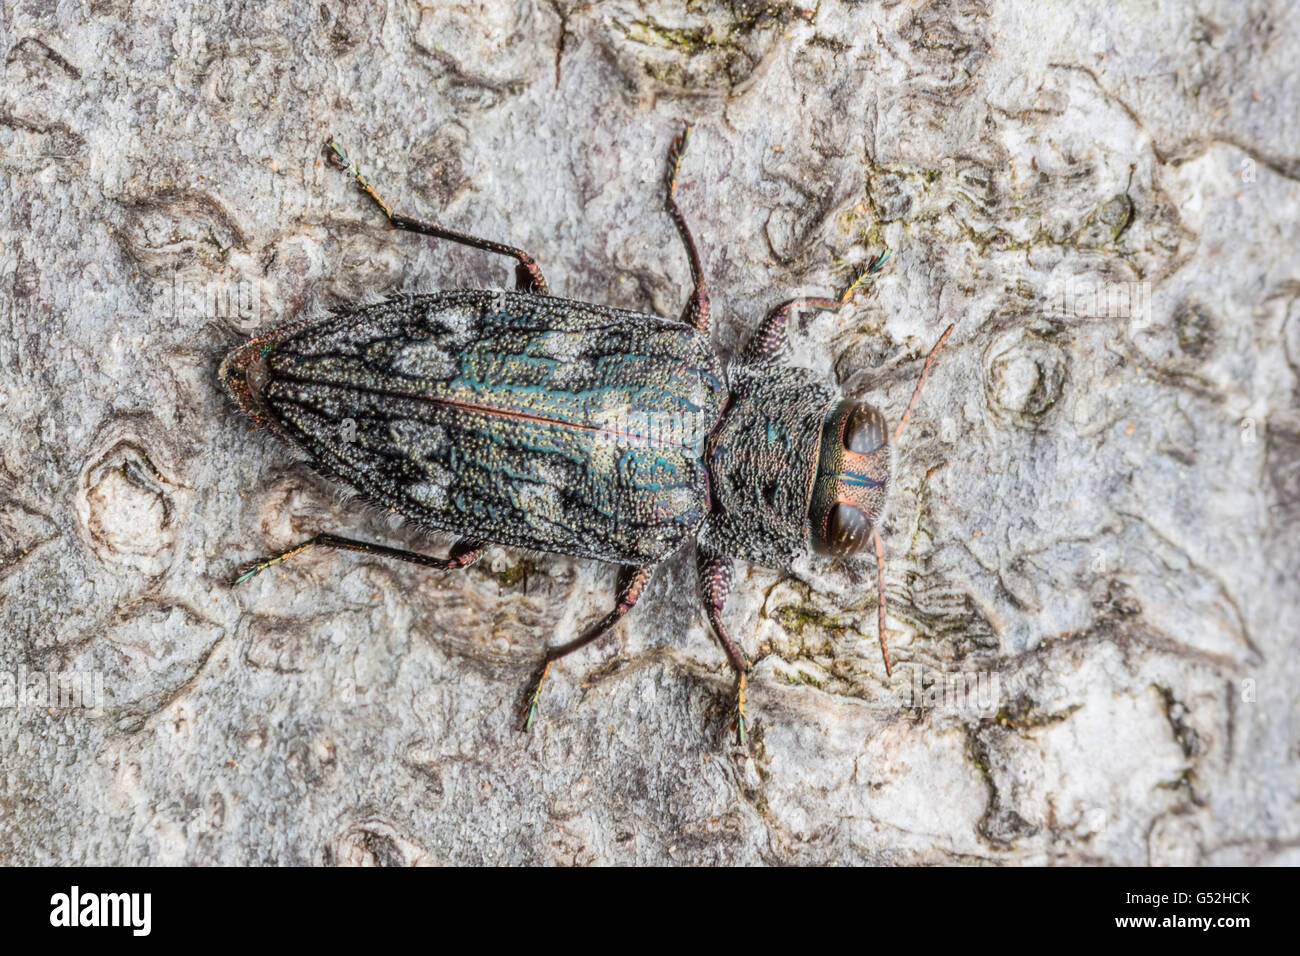 A Metallic Wood-boring Beetle (Chrysobothris rugosiceps) perches on the trunk of a fallen oak tree. - Stock Image